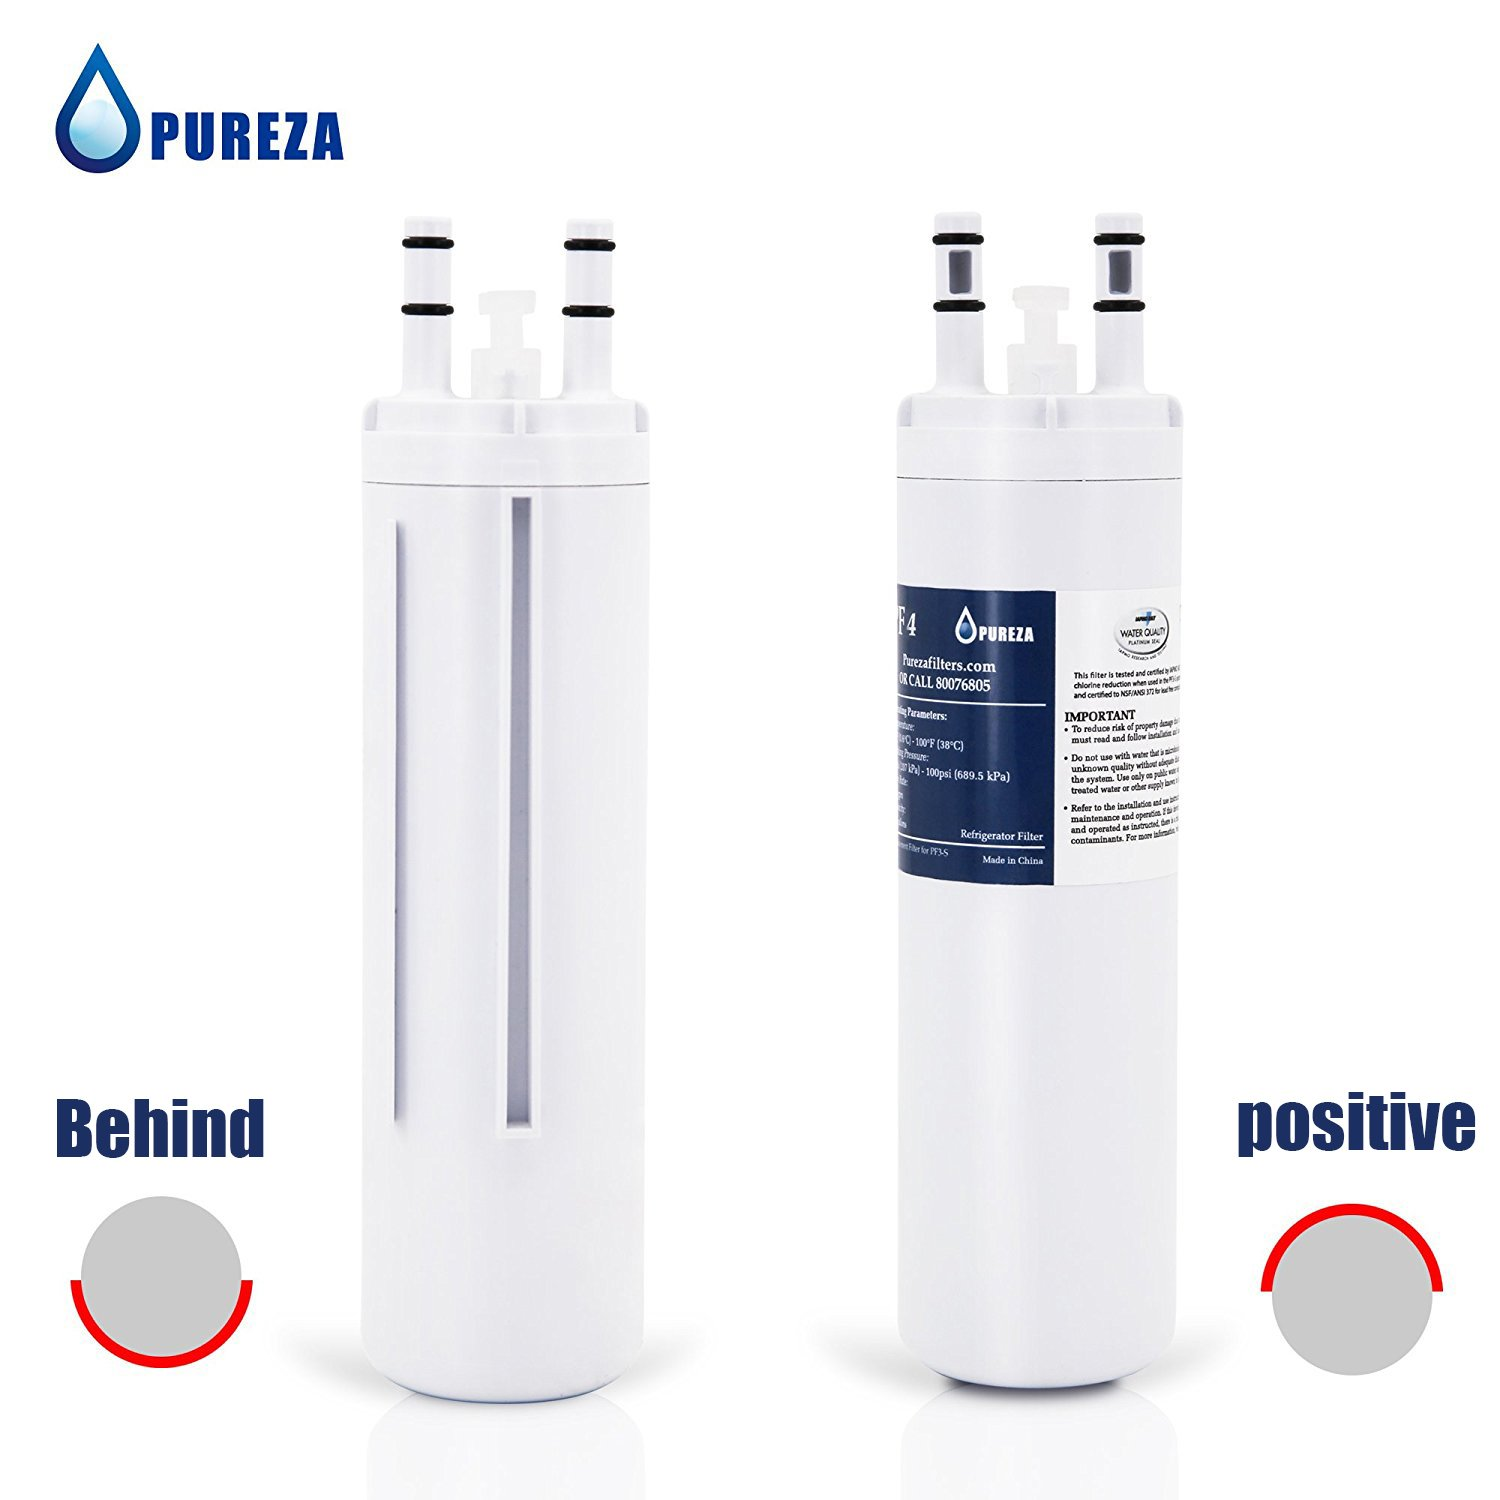 Pureza WF3CB Water Filter - Compatible with WF3CB, Pure Source 3 Refrigerator Water Filter, Pack of 3 by Pureza filters (Image #4)